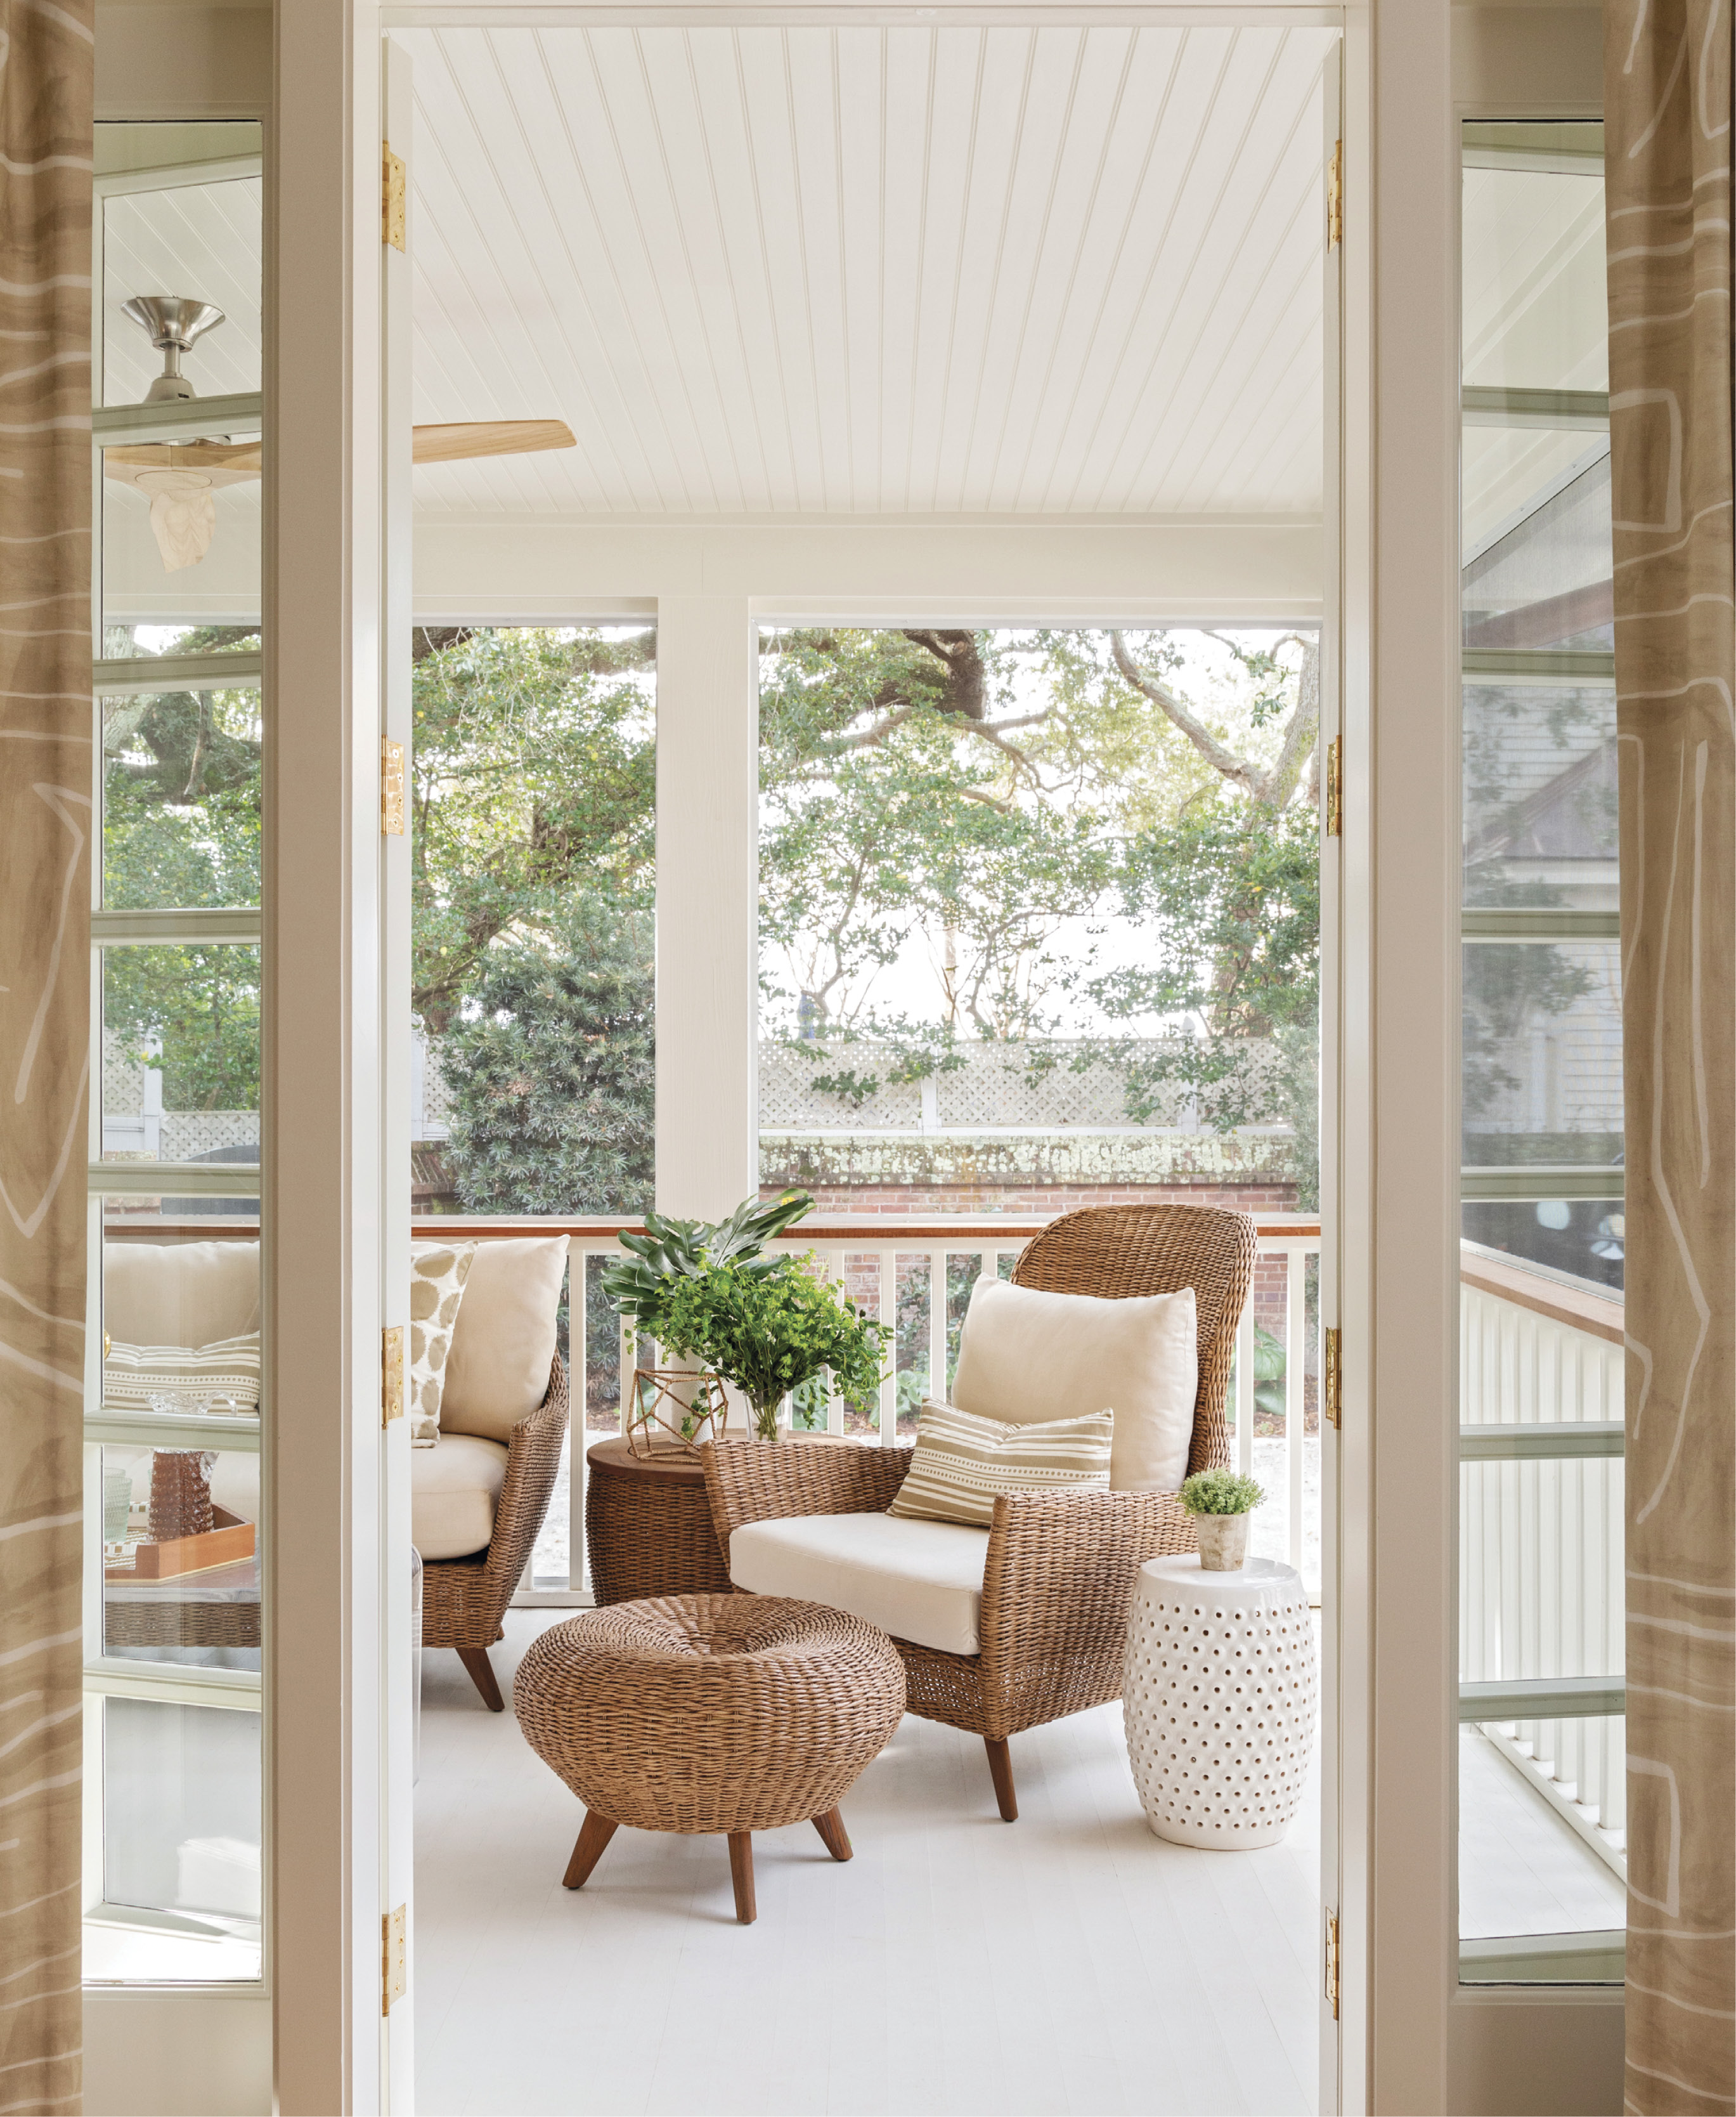 OUTDOORS IN: A glassed-in sun-room was converted into a screened porch to provide more airflow and outdoor space. The Lloyd Flanders sofa from GDC Charleston is often the domain of older Lab, Margot.